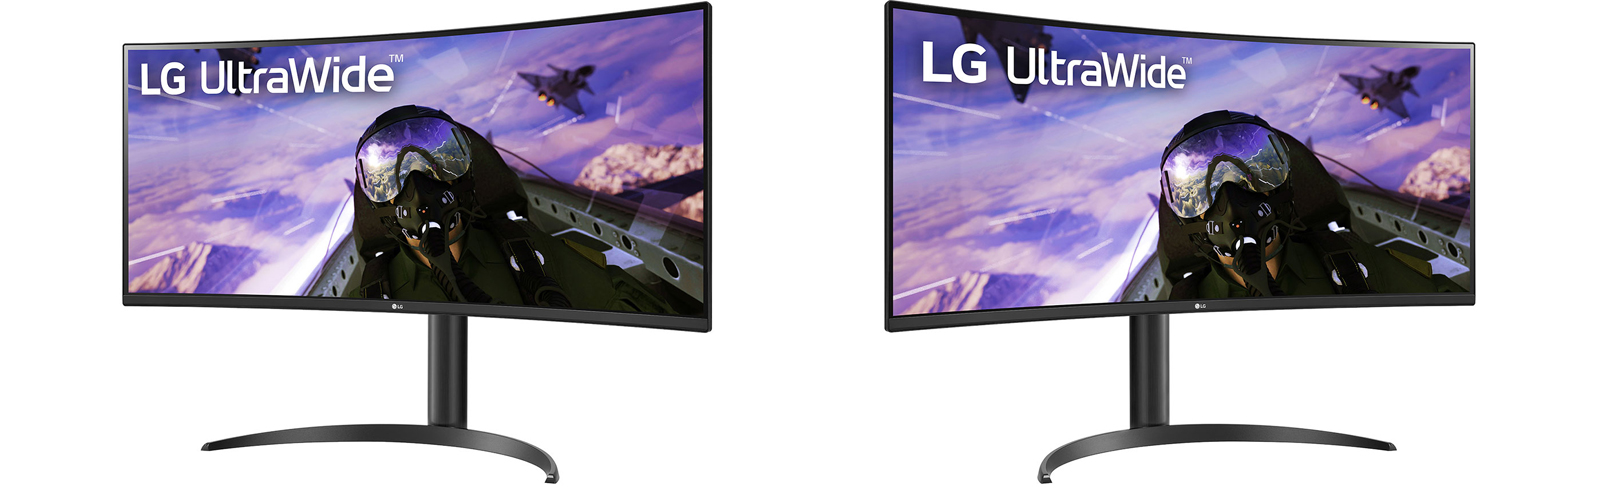 """The LG 34WP65C is a new UltraWide 34"""" curved monitor for gamers"""